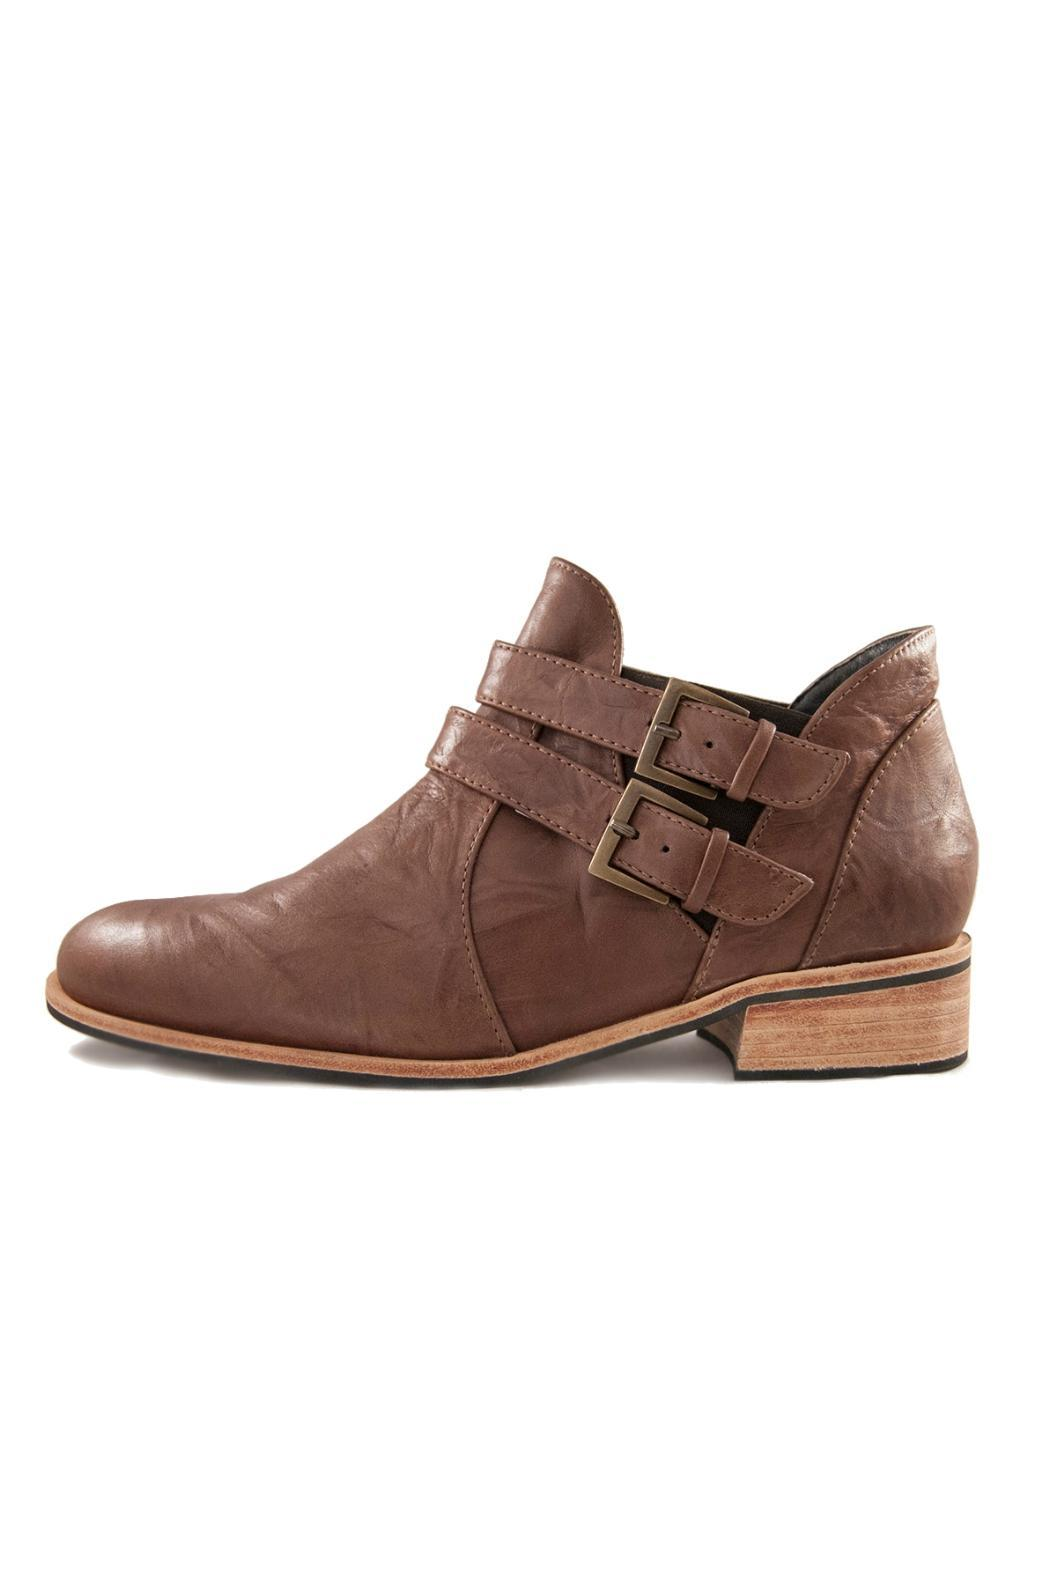 Fortress of Inca Handmade Leather Shootie - Main Image